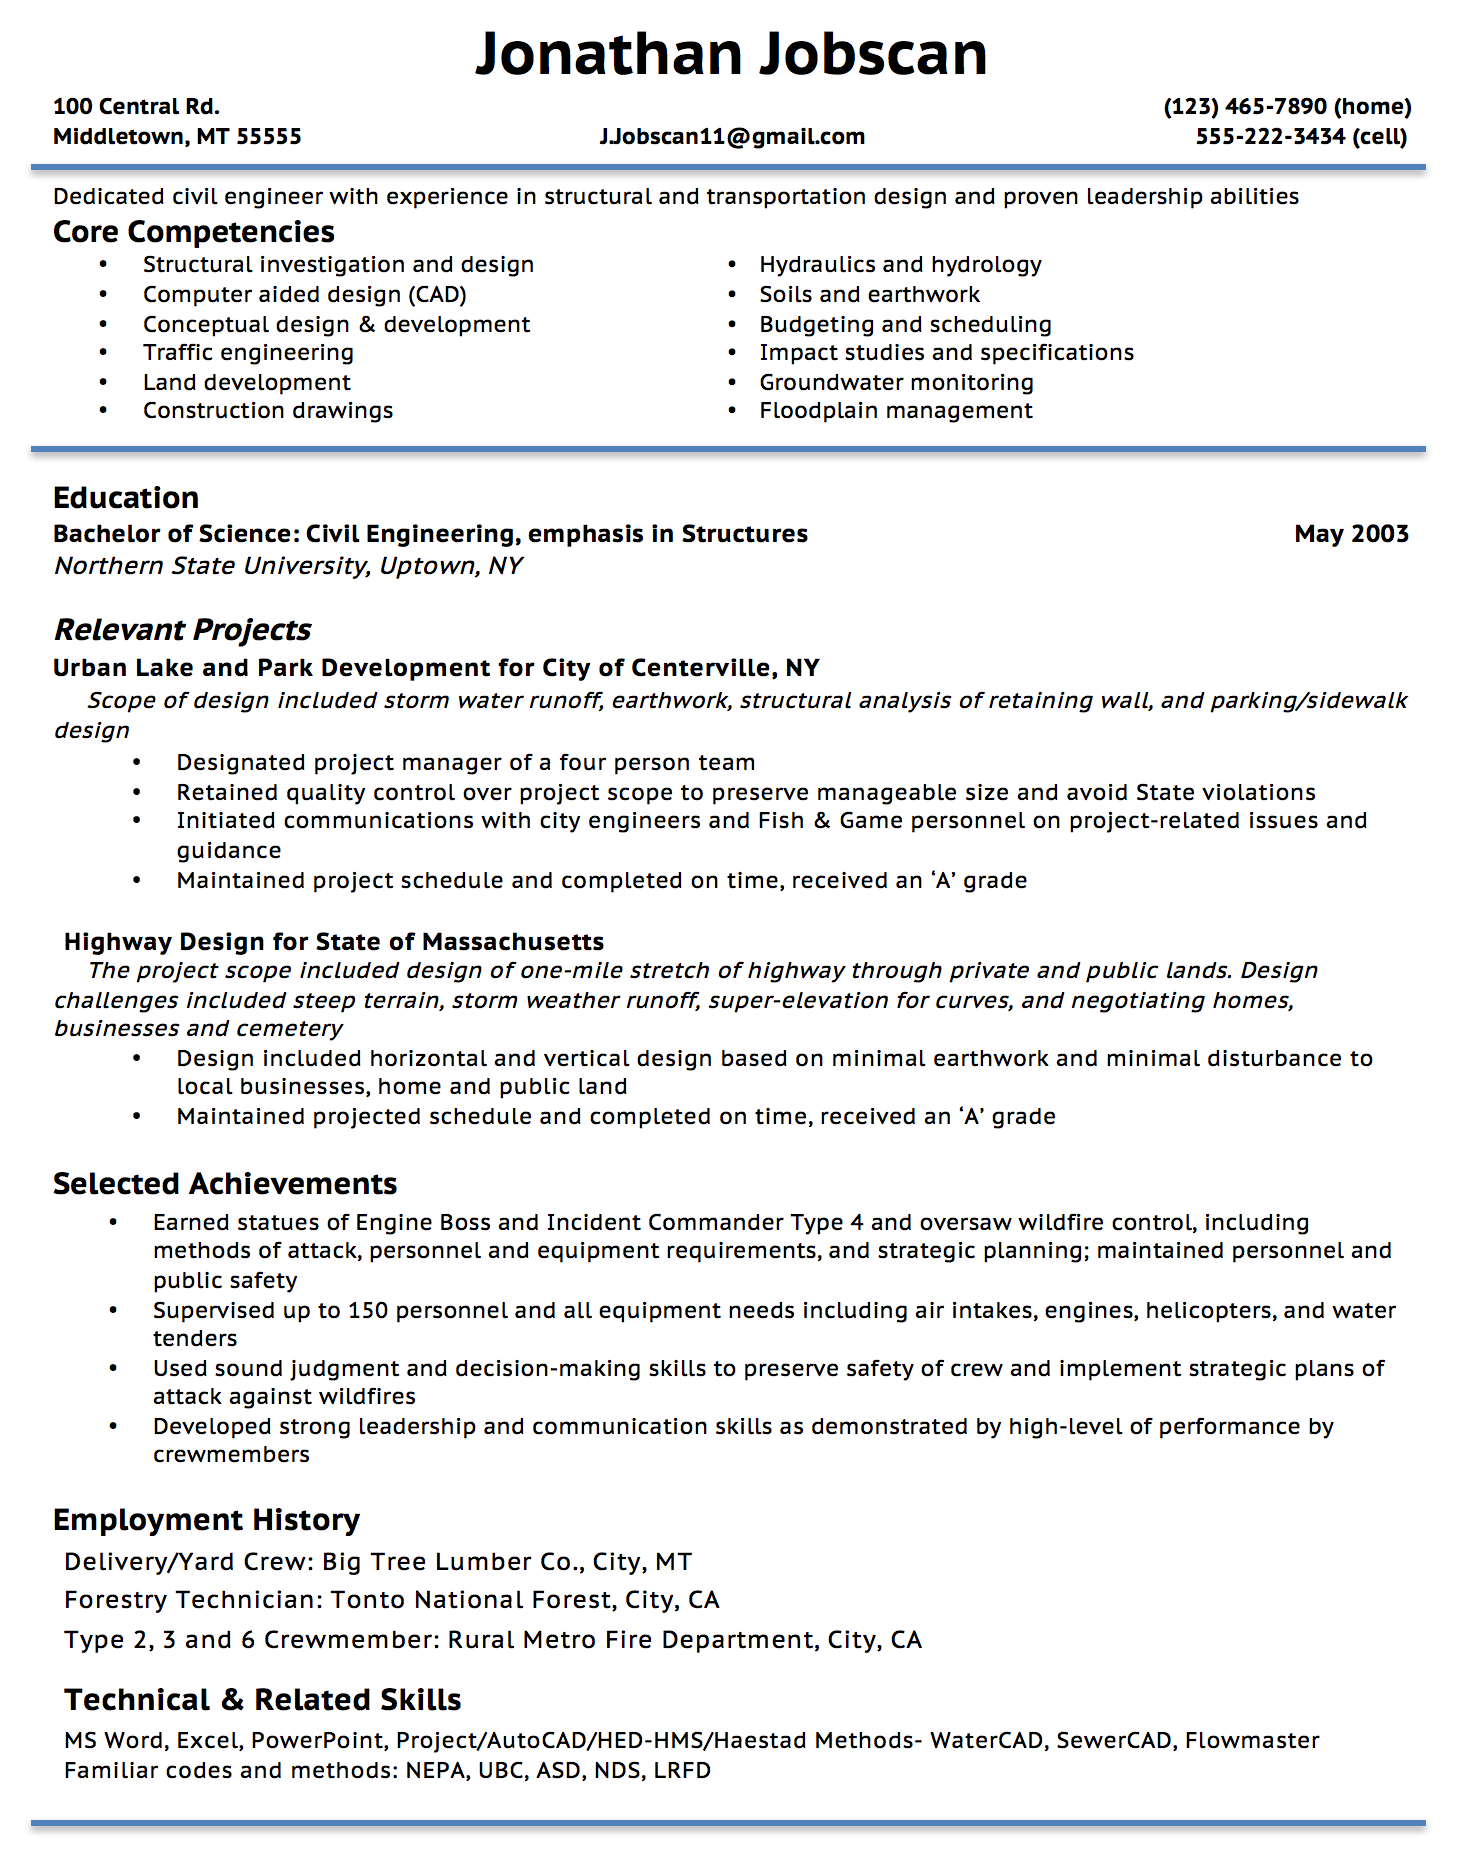 Opposenewapstandardsus  Pleasing Resume Writing Guide  Jobscan With Entrancing Example Of A Functional Resume Format With Charming Company Resume Template Also Resume Writing Services Mn In Addition Crane Operator Resume And Resume Linked In As Well As Civil Engineer Resume Examples Additionally What To Add To A Resume From Jobscanco With Opposenewapstandardsus  Entrancing Resume Writing Guide  Jobscan With Charming Example Of A Functional Resume Format And Pleasing Company Resume Template Also Resume Writing Services Mn In Addition Crane Operator Resume From Jobscanco